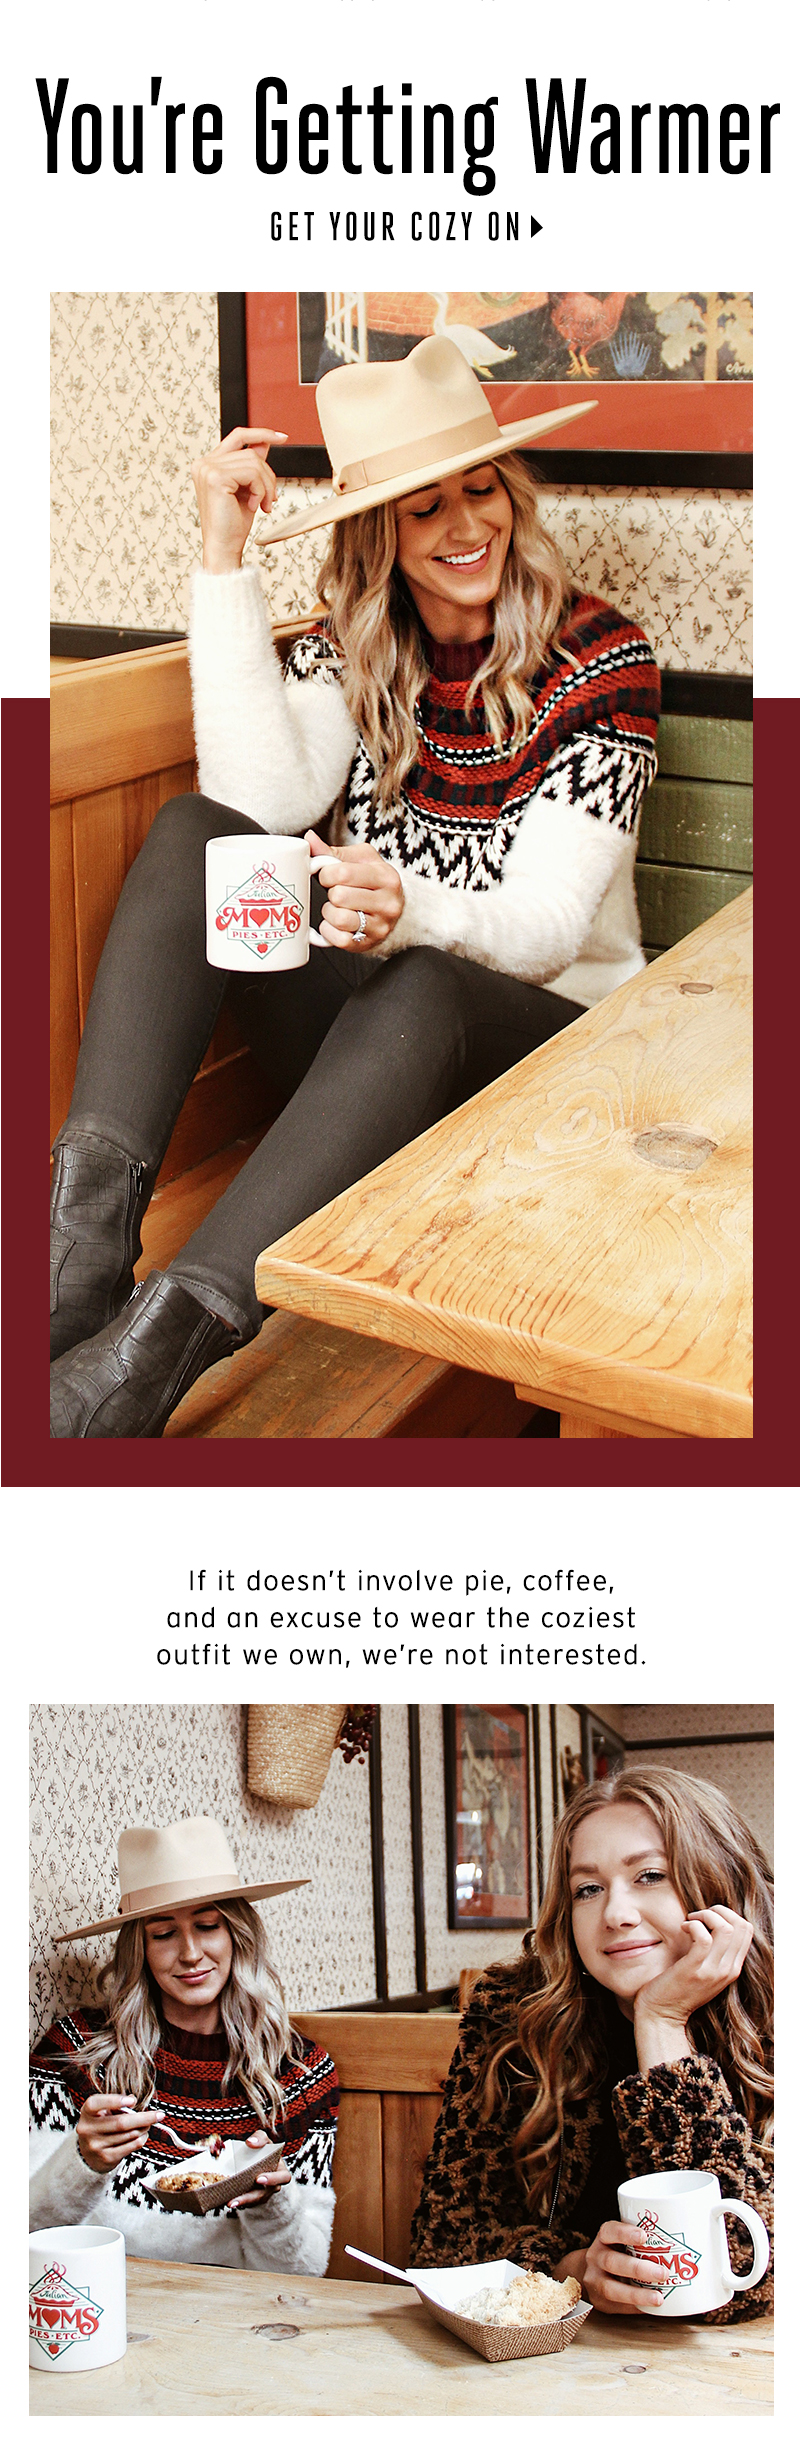 You're Getting Warmer. If it doesn't involve pie, coffee, and an excuse to wear the coziest outfit we own, we're not interested. Get Your Cozy On.